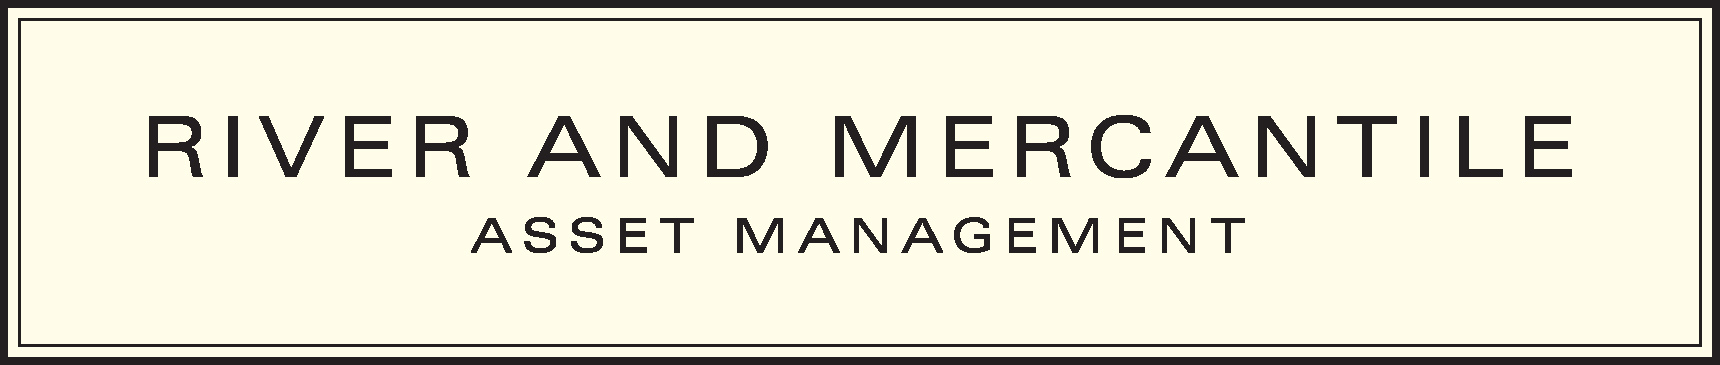 River and Mercantile Asset Management